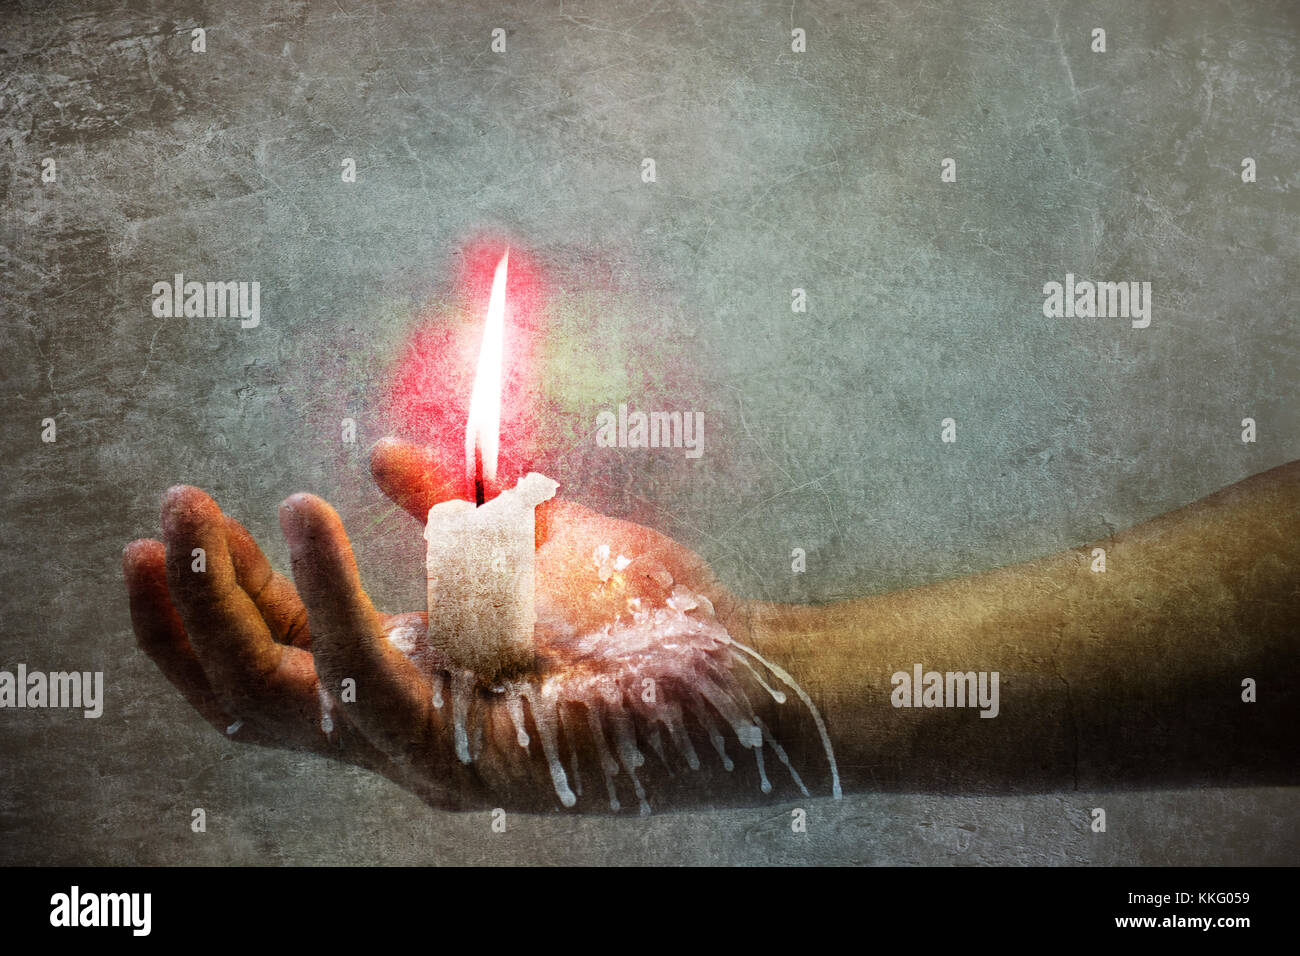 A hand holding a burning candle and wax falling down - Stock Image